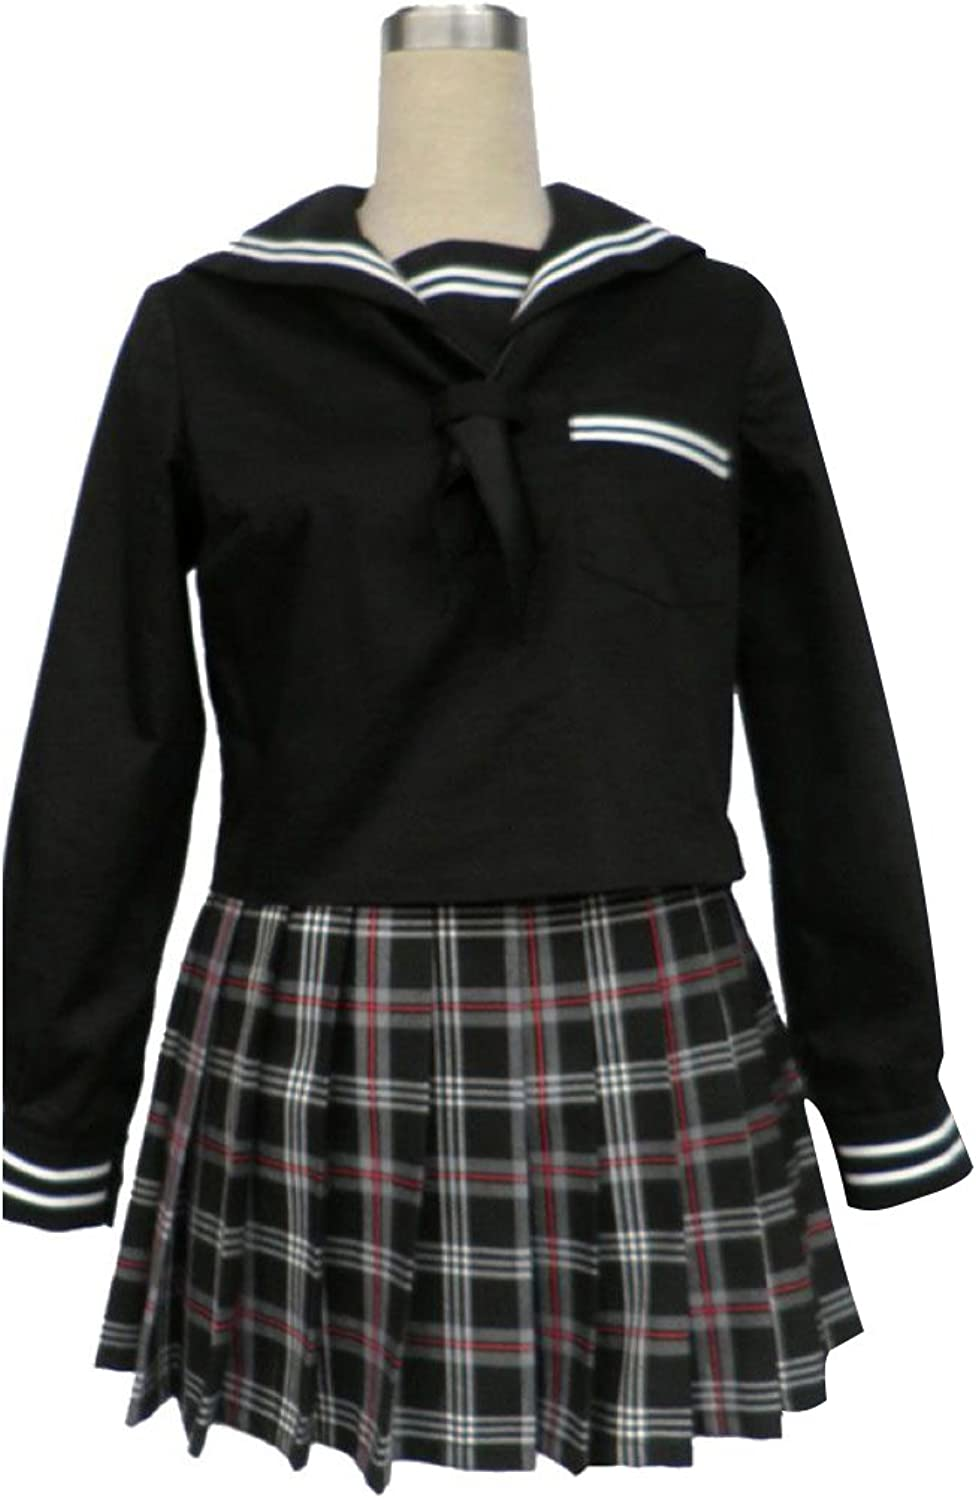 Dream2Reality Sailor Cuture Cosplay KostuemSailor Uniform7th Ver Kid Size Large